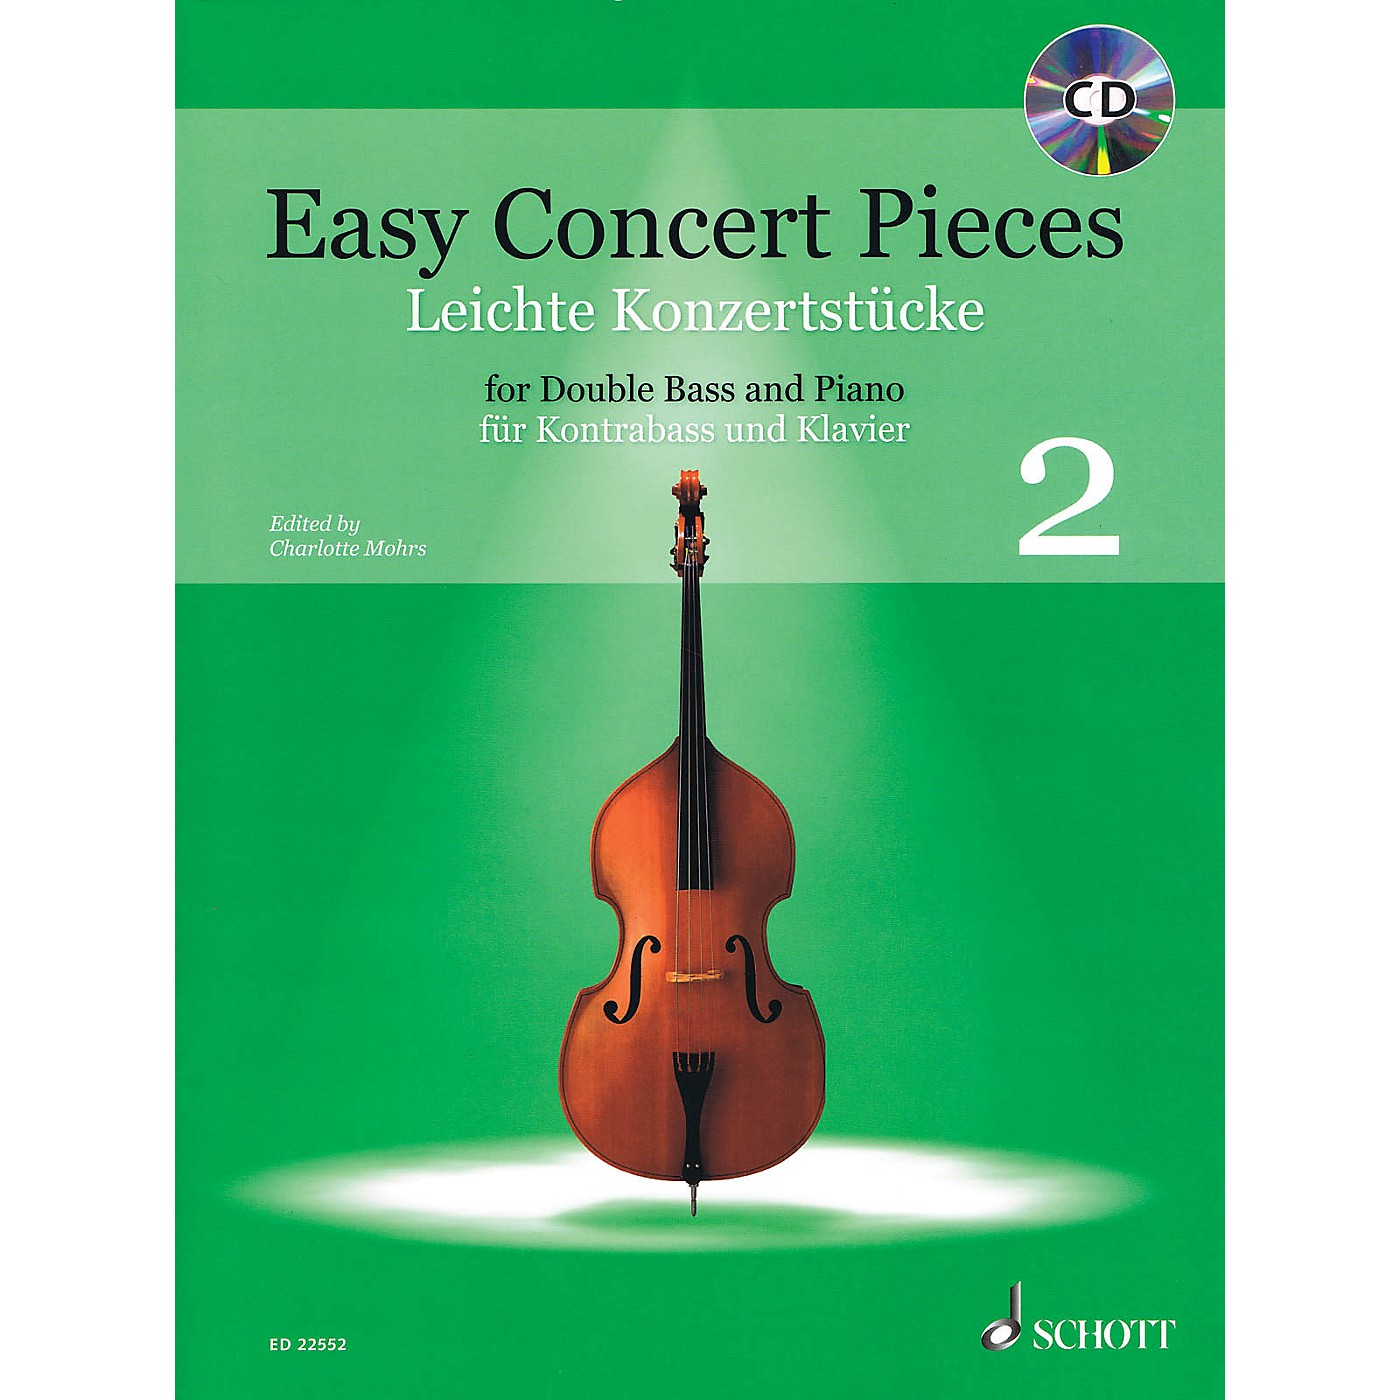 Schott Easy Concert Pieces, Book 2 (24 Easy Pieces from 5 Centuries using Half to 3rd Position) Book/CD thumbnail